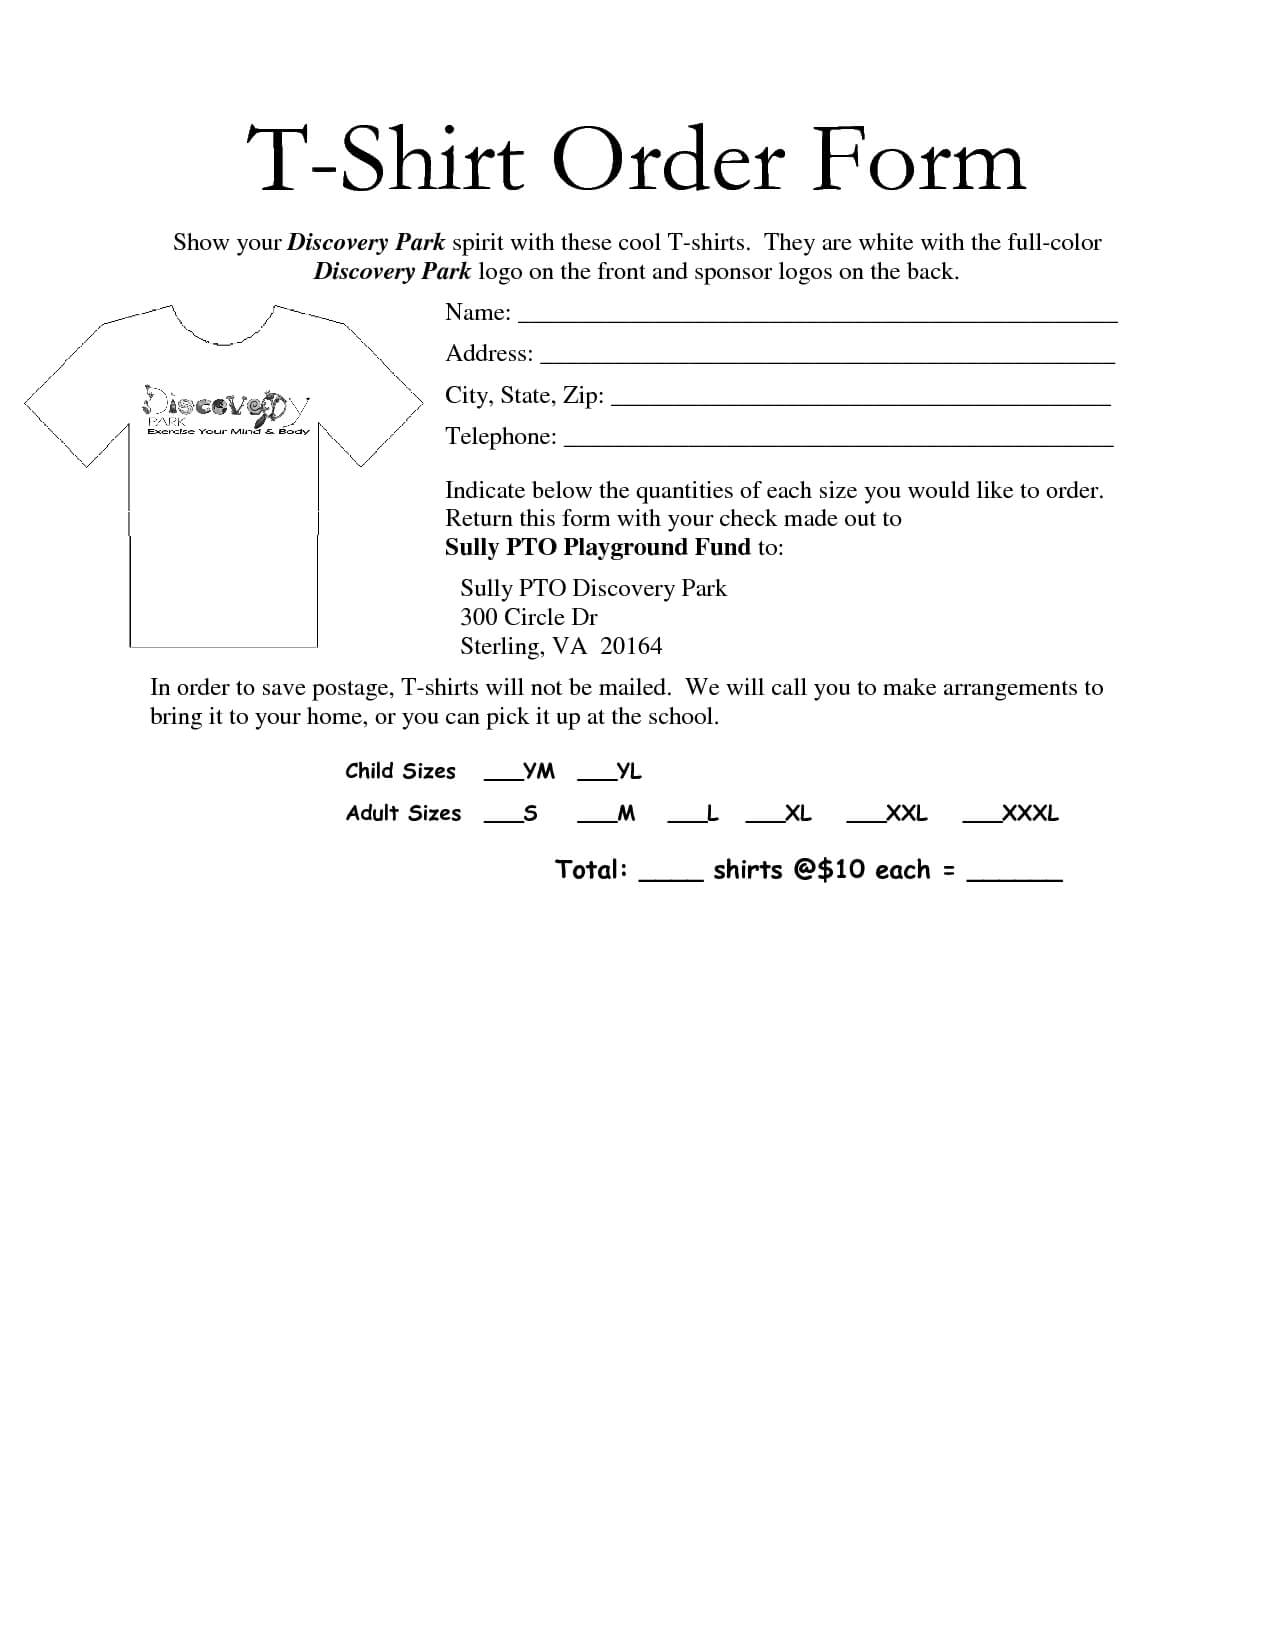 35 Awesome T Shirt Order Form Template Free Images For Blank T Shirt Order Form Template